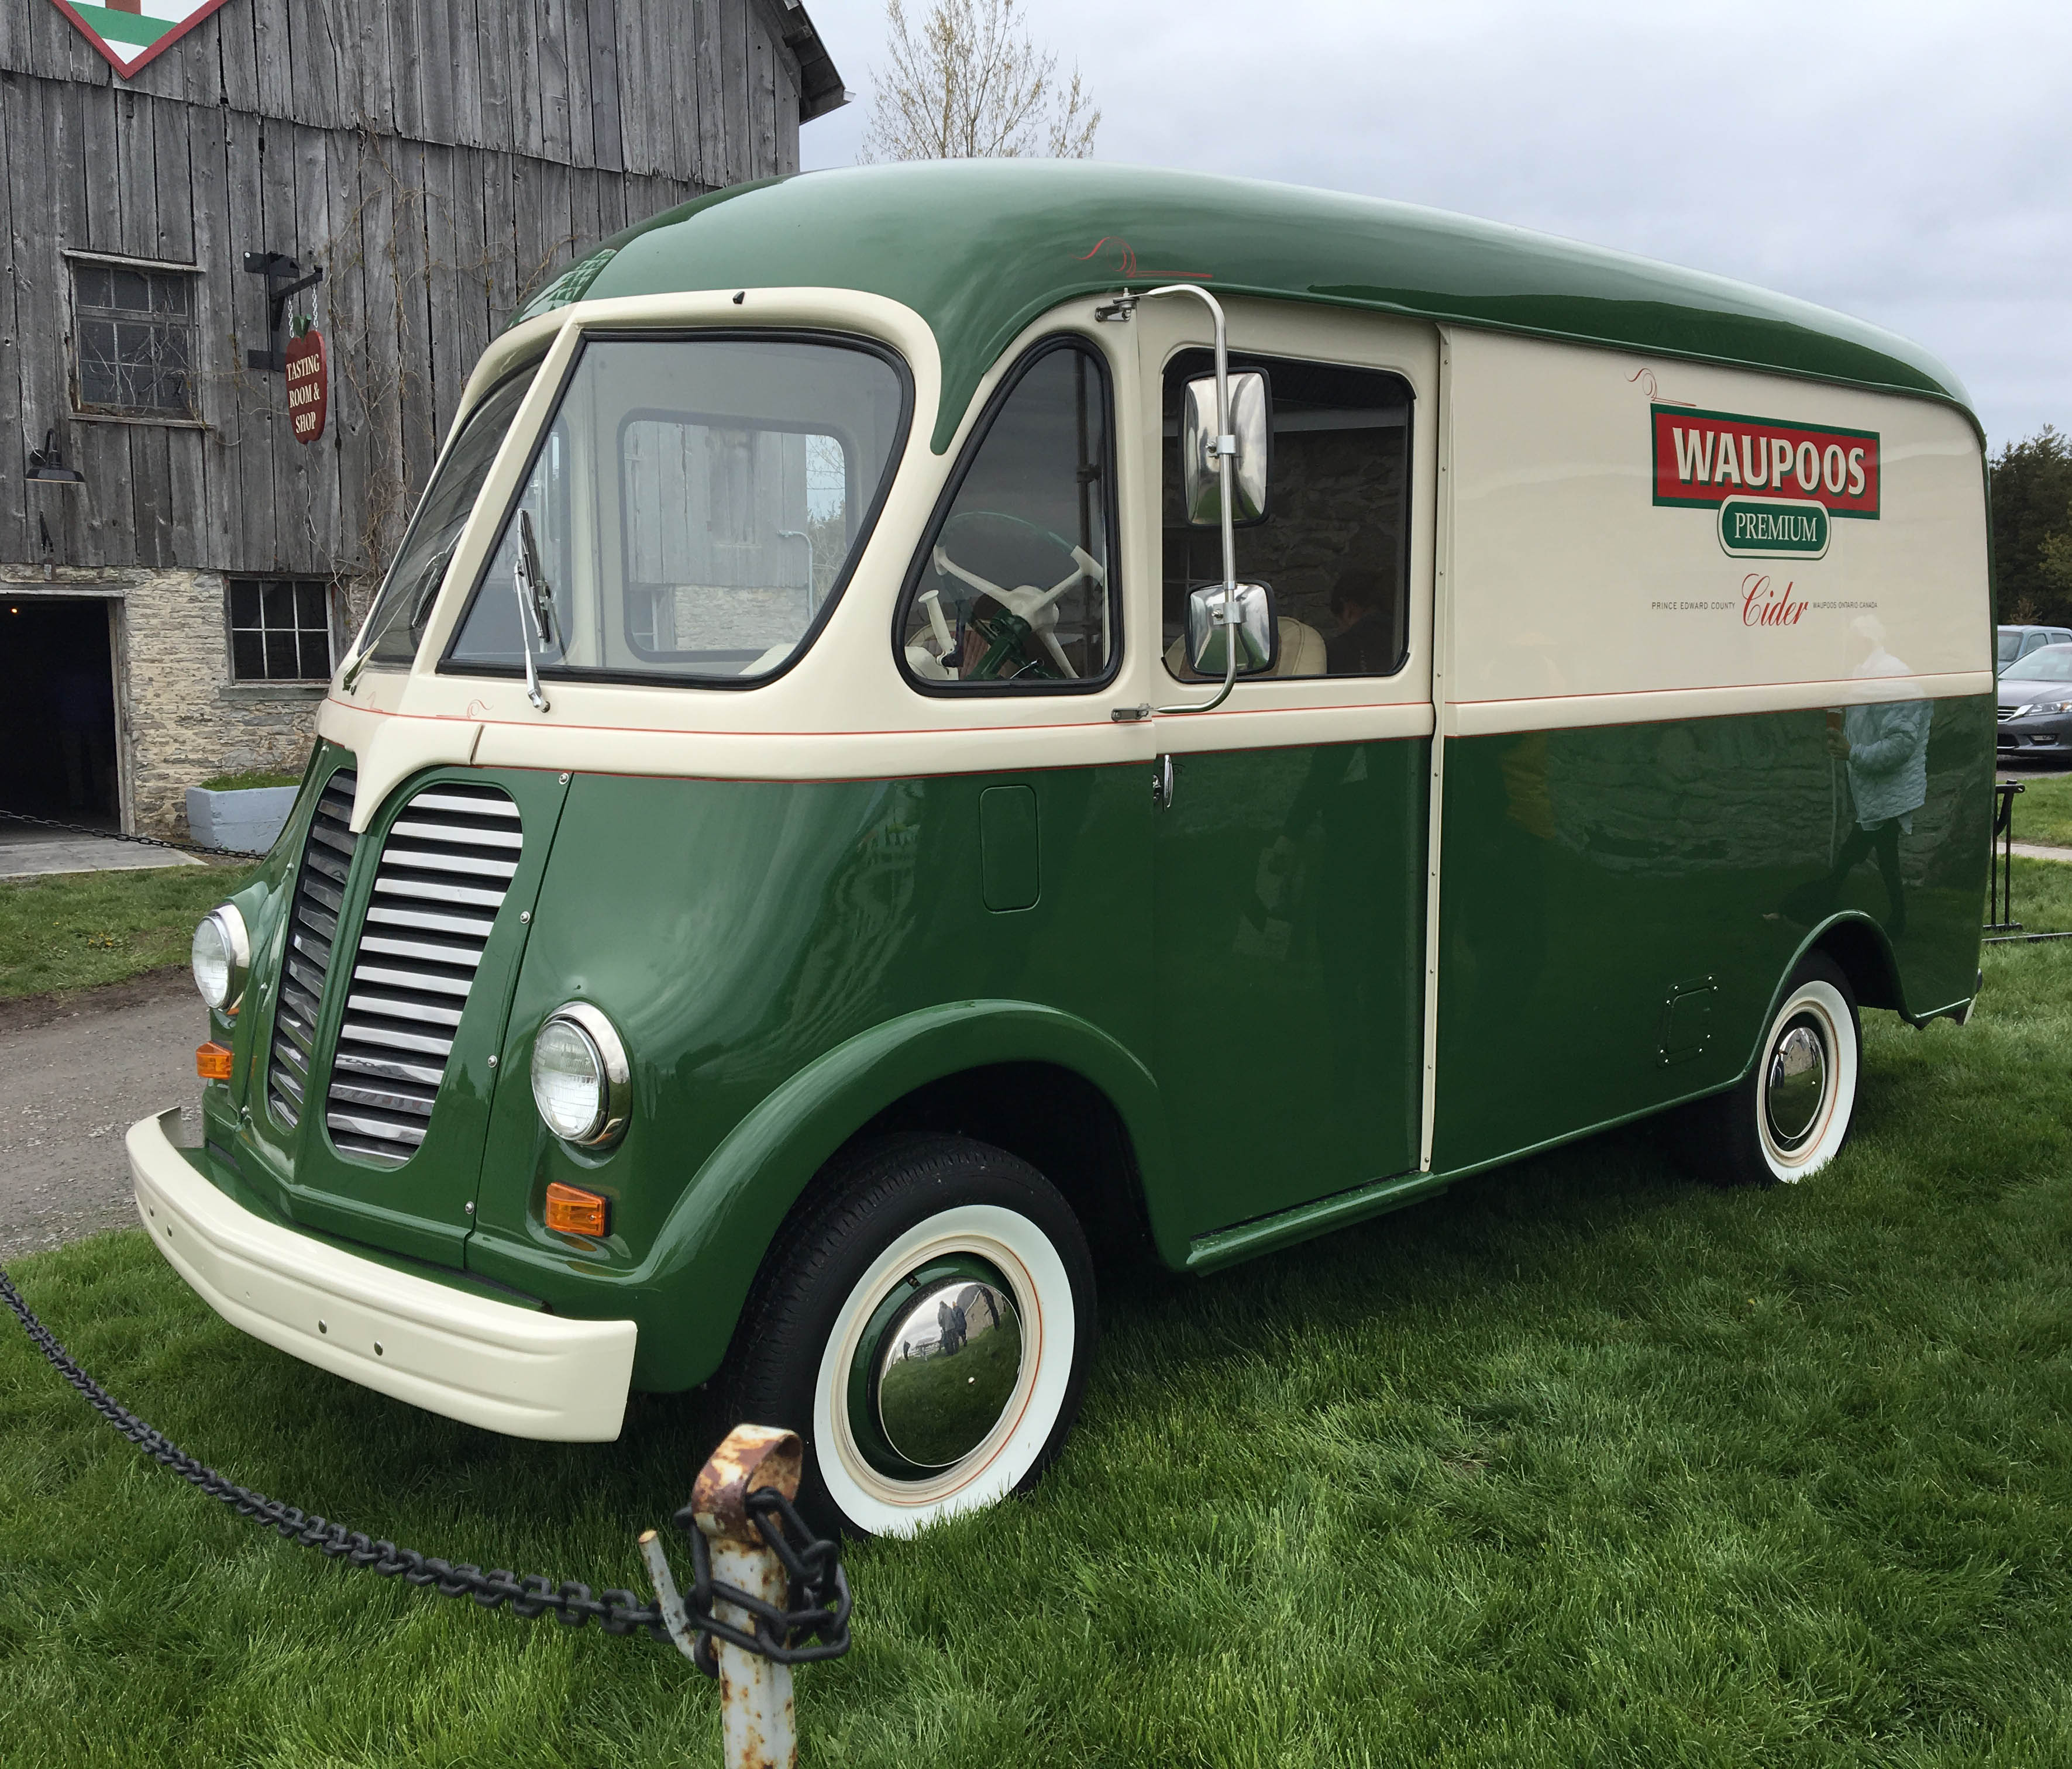 County Cider's Waupoos Wagon